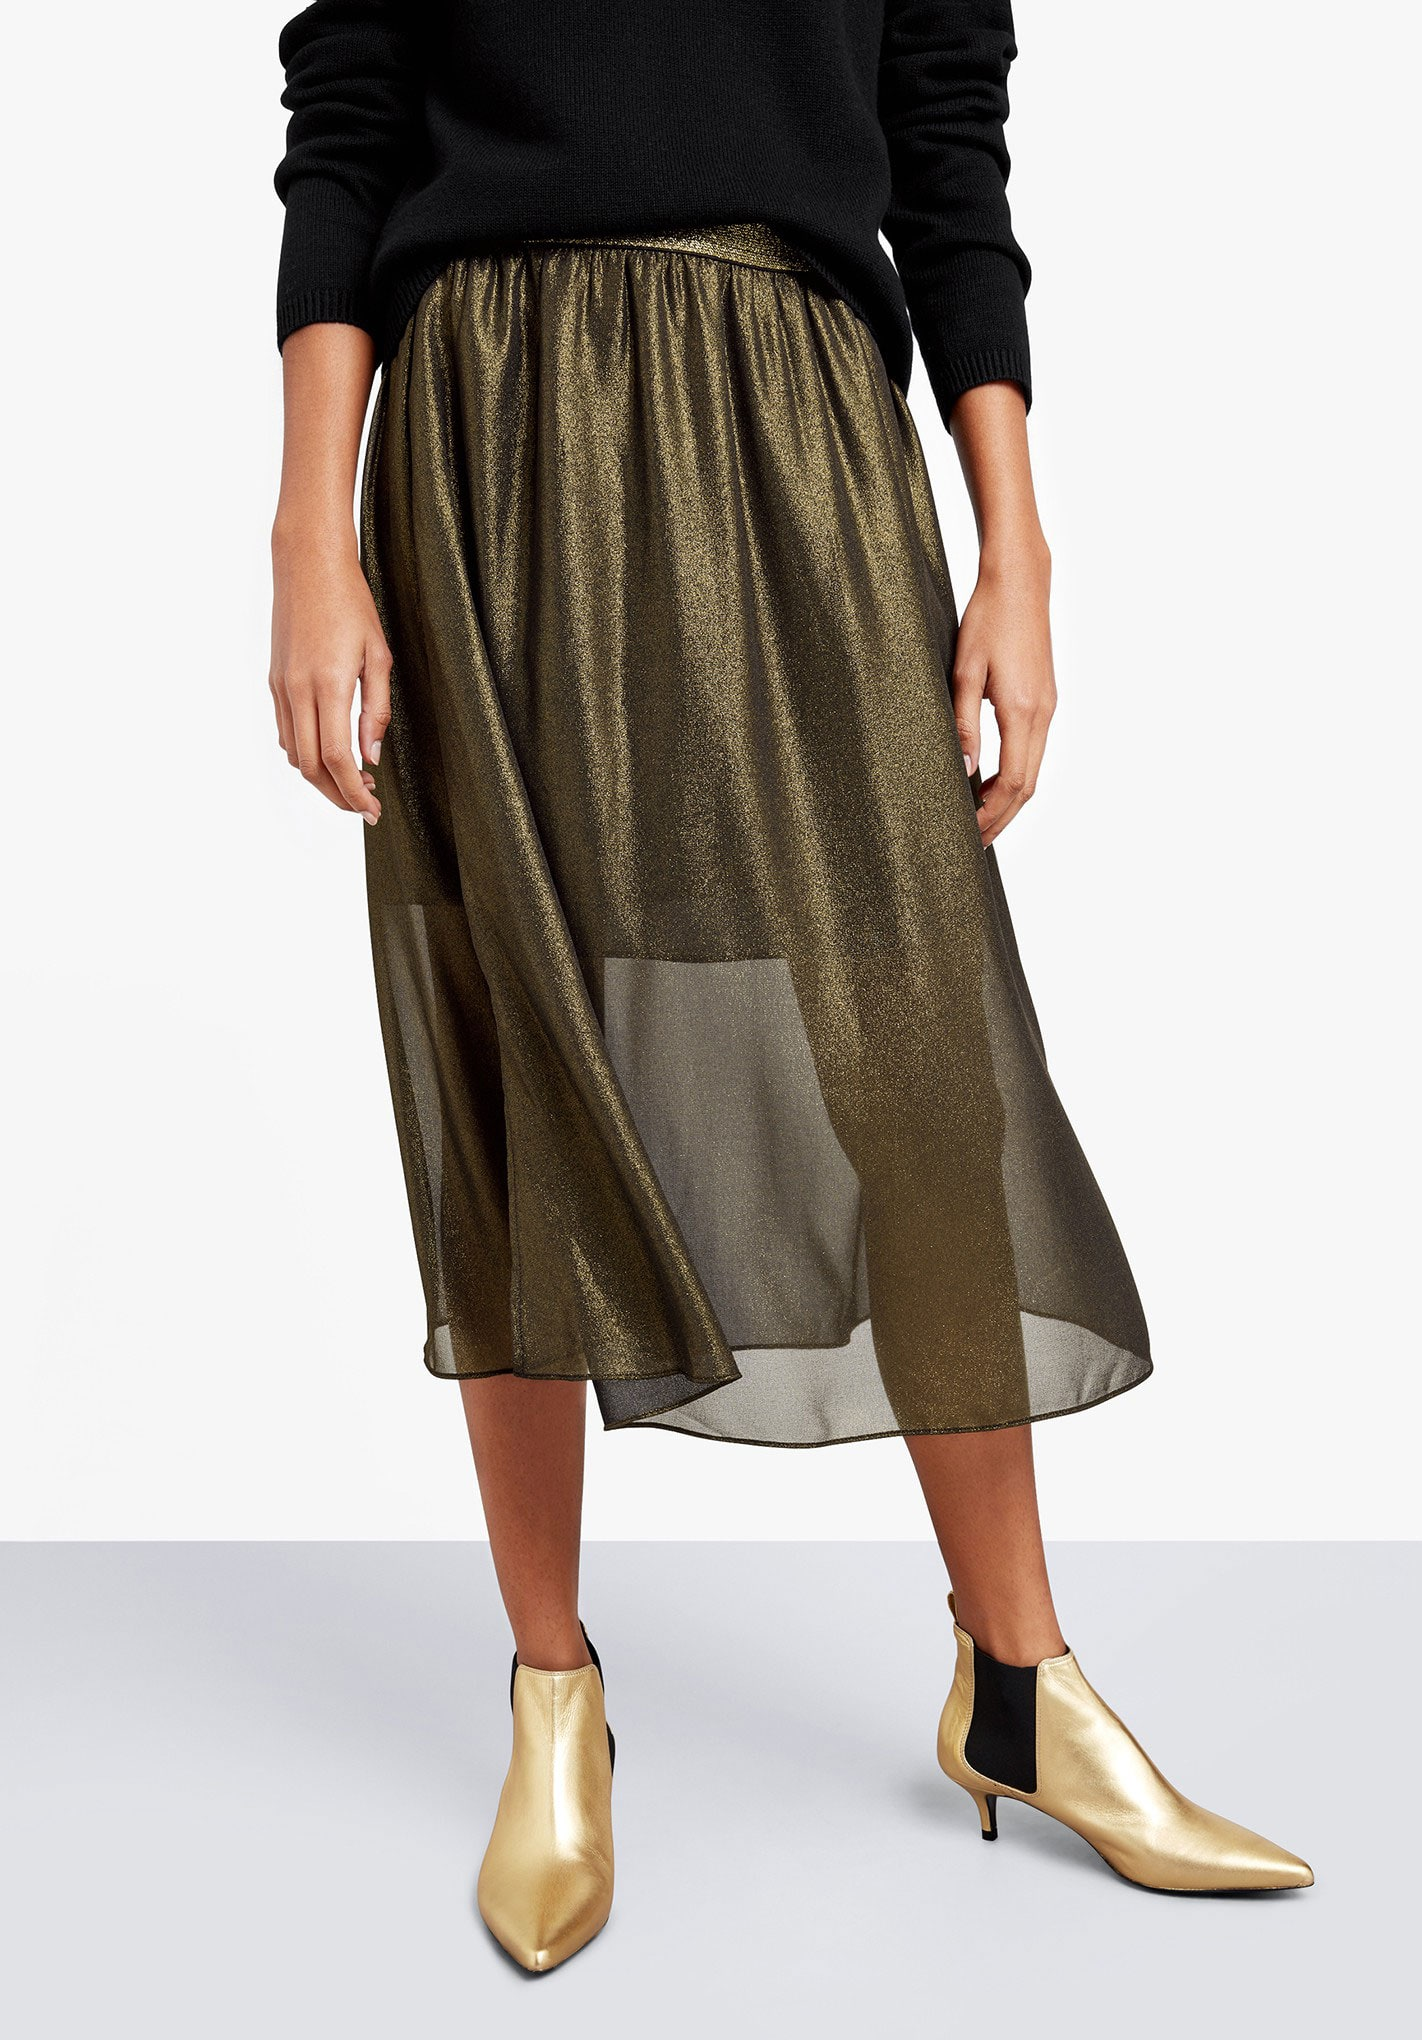 Hush metallic skirt